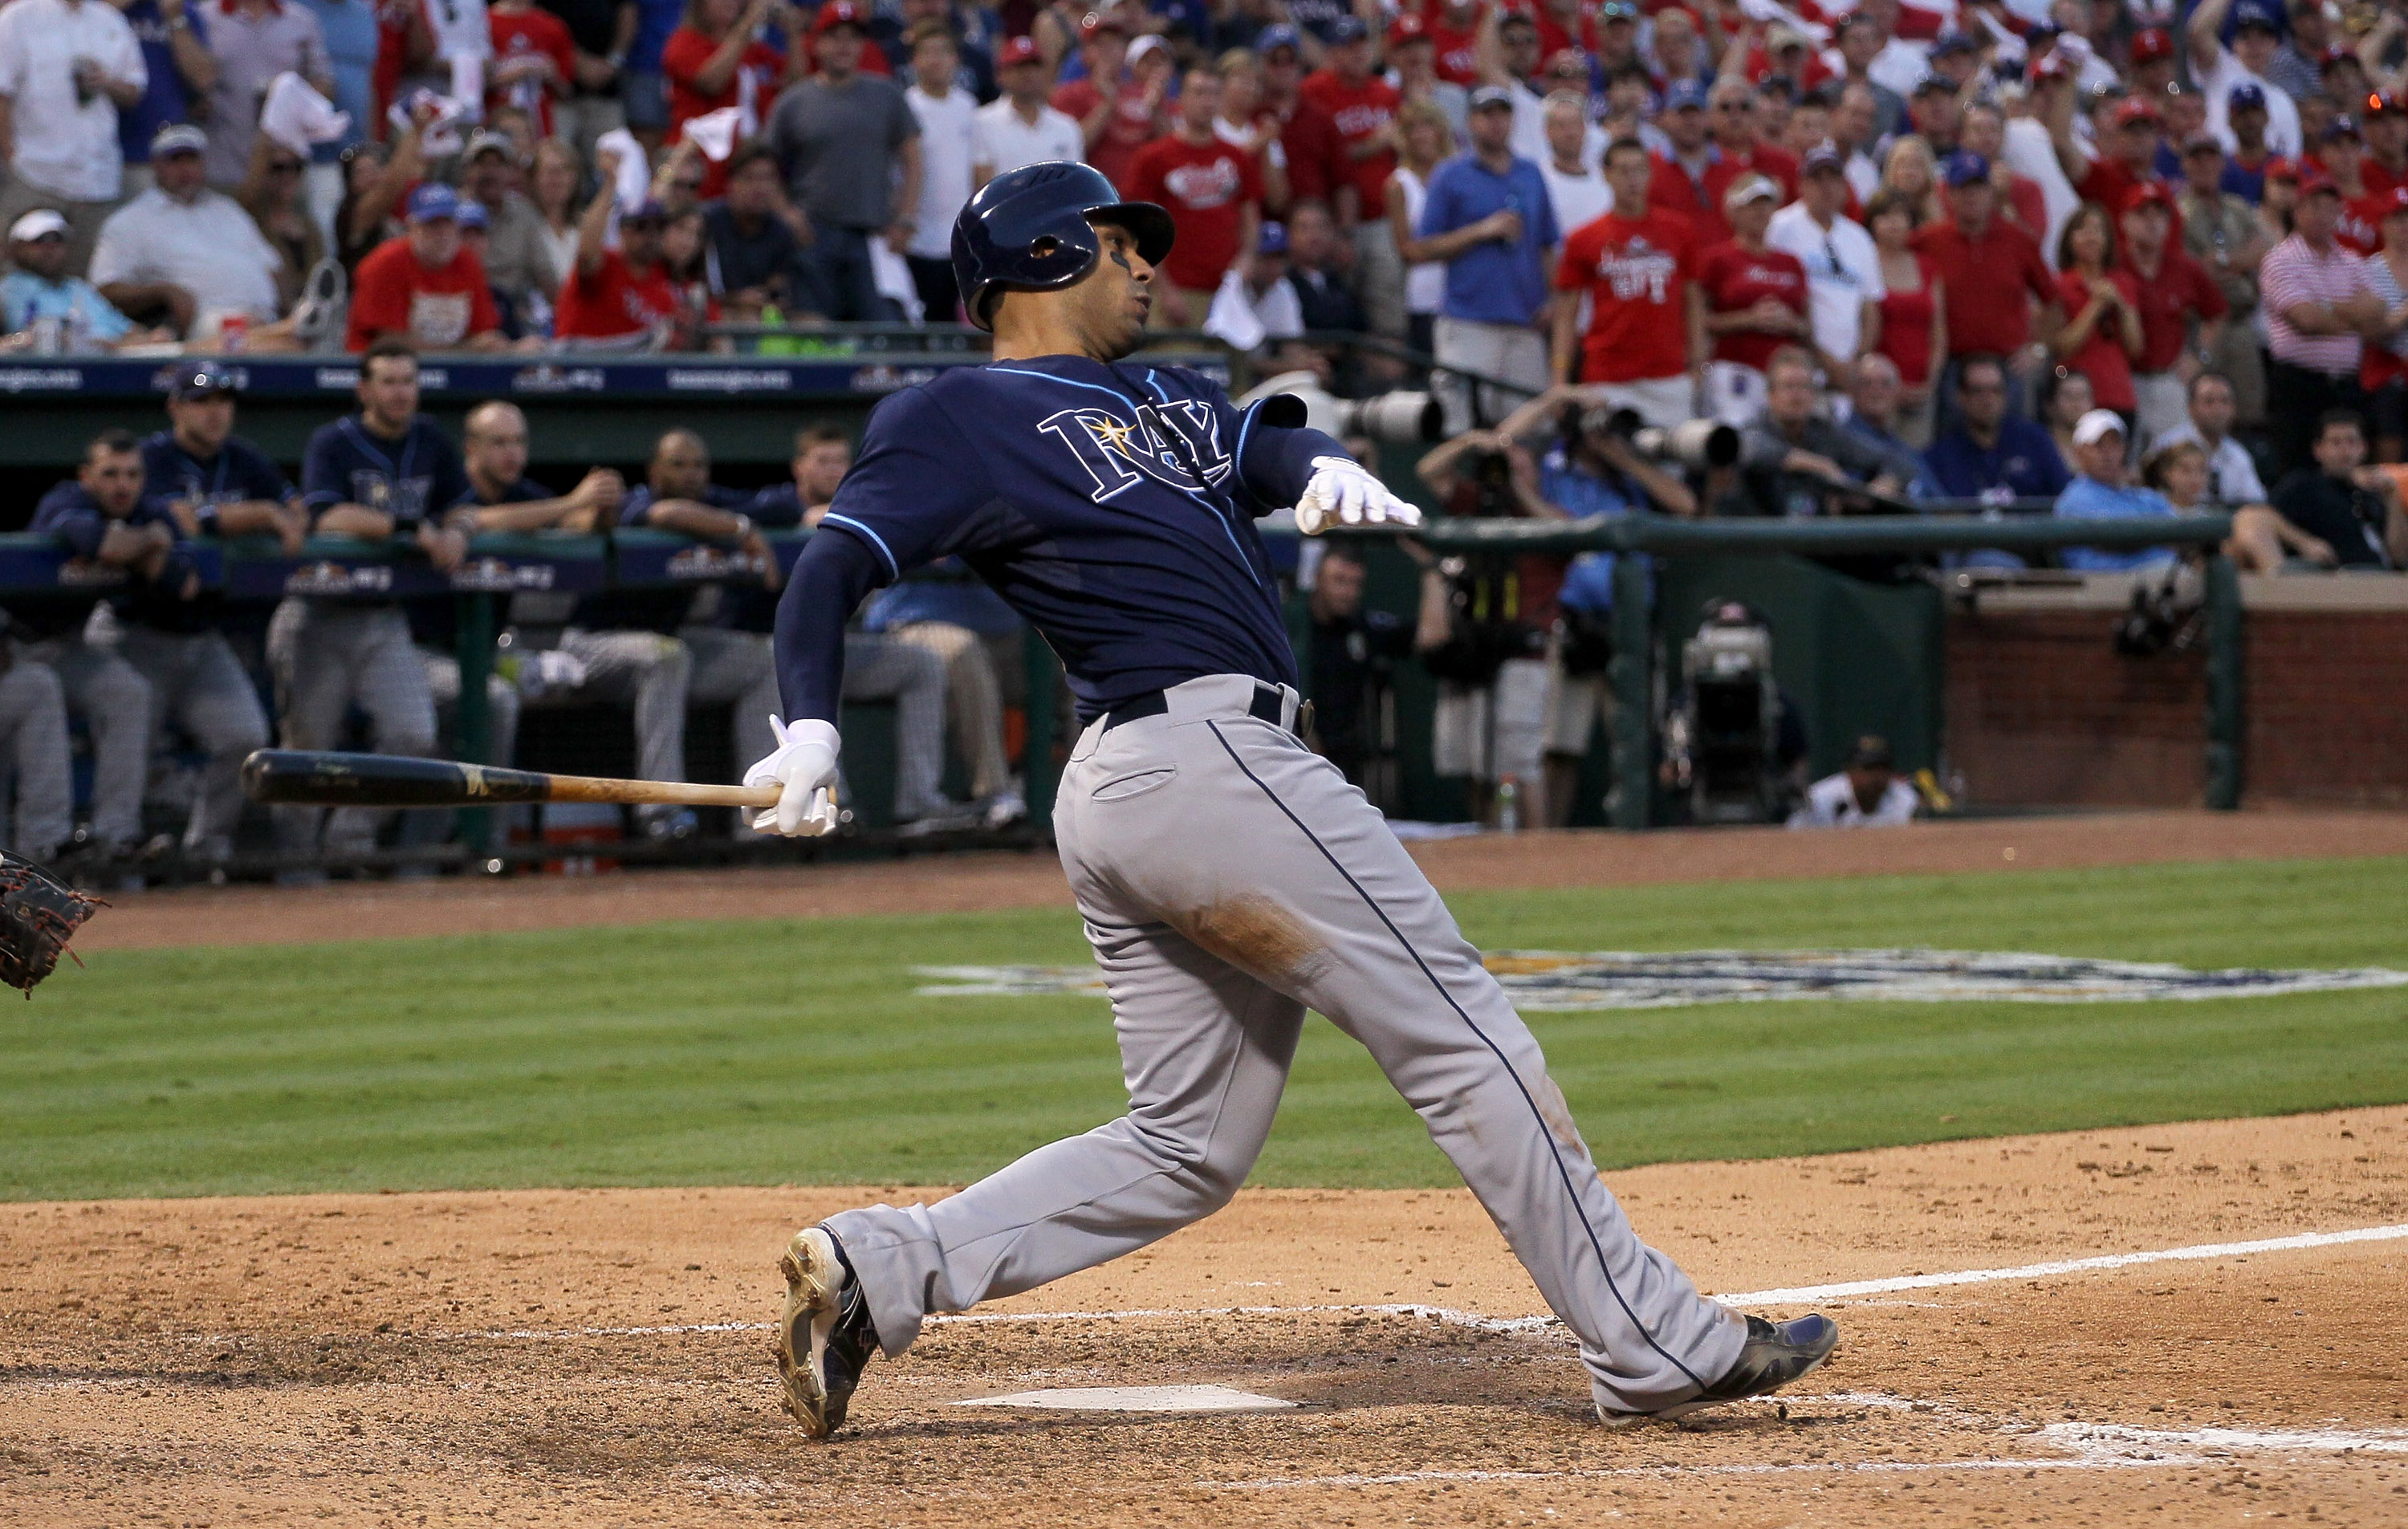 ARLINGTON, TX - OCTOBER 09:  Carlos Pena #23 of the Tampa Bay Rays hits an RBI single in the eighth inning against the Texas Rangers during game three of the ALDS at Rangers Ballpark in Arlington on October 9, 2010 in Arlington, Texas.  The Rays won 6-3.